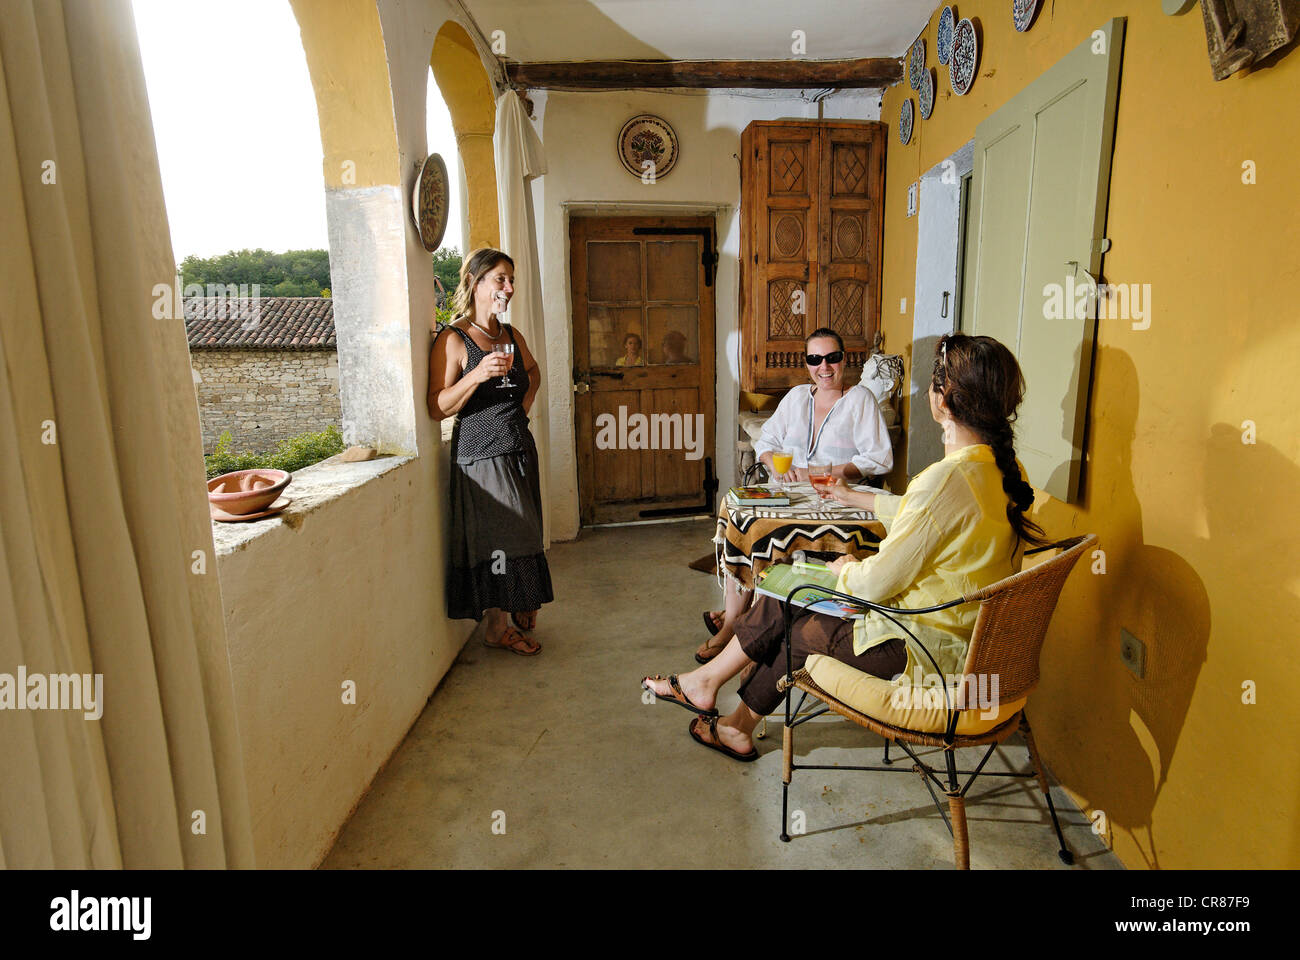 France, Gard, Barjac, early evening drink with friends at Mas Escombelle - Stock Image